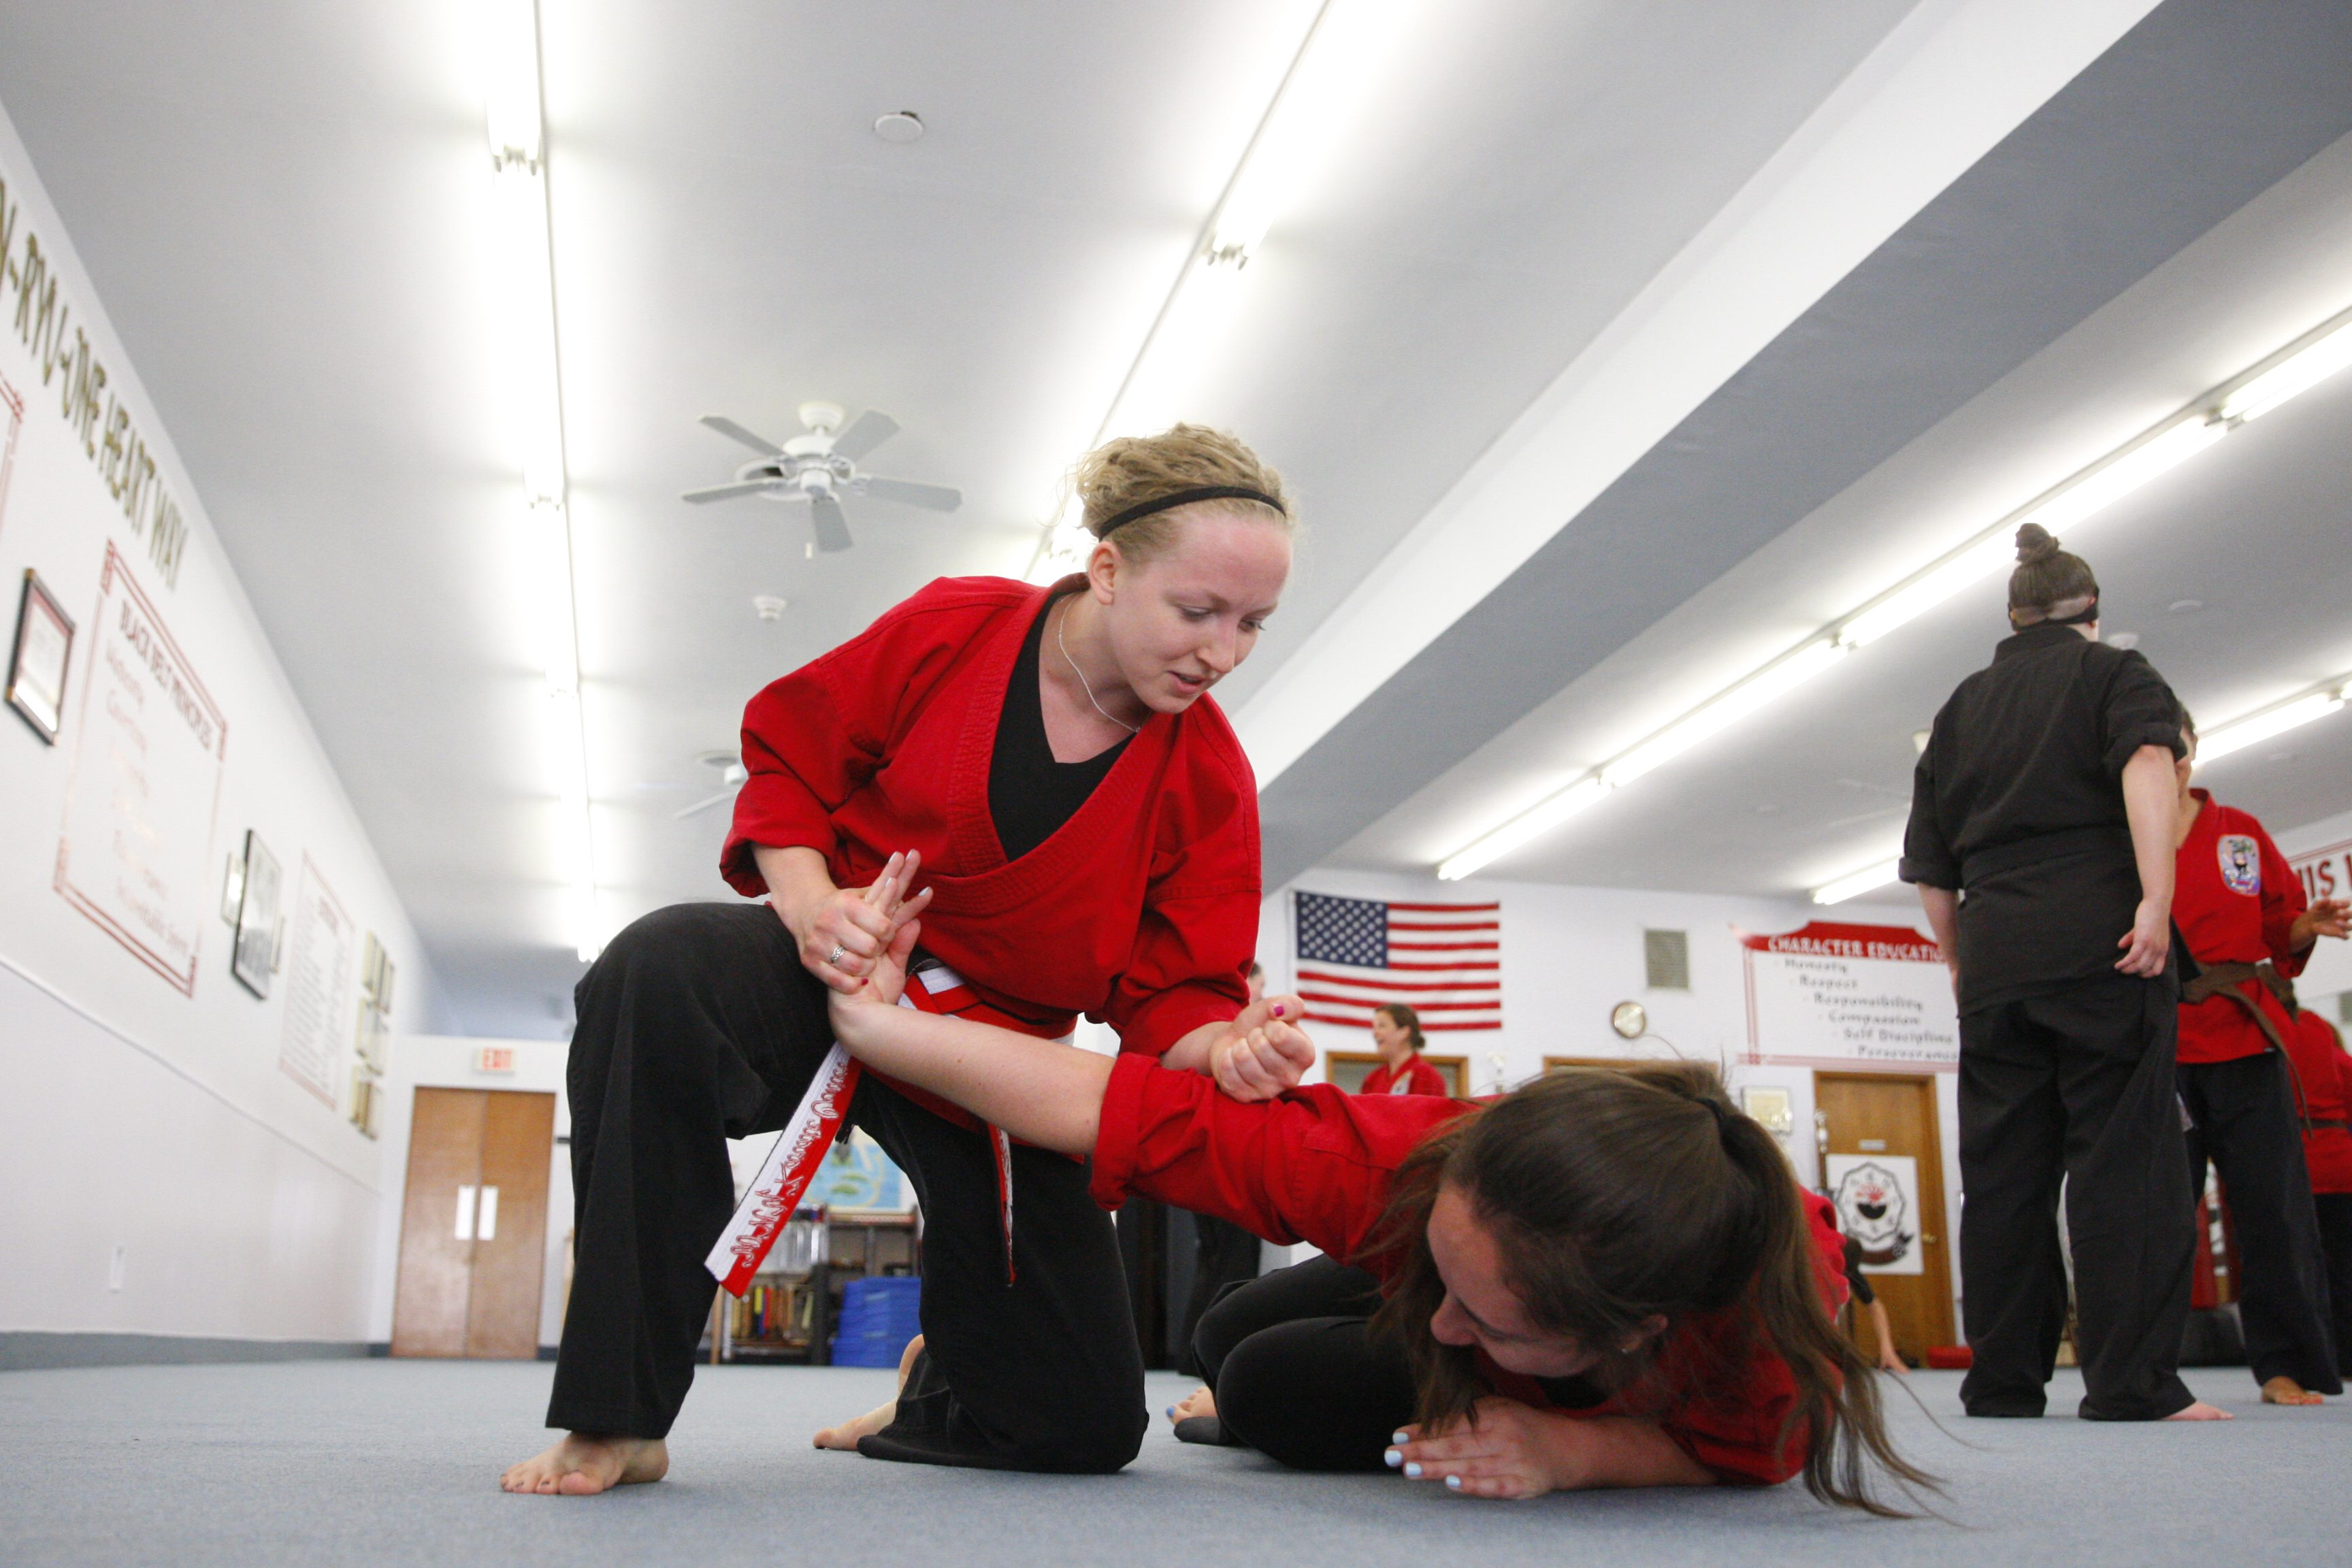 Alicia Hargadon(blonde hair) trains with Kayla Simpson a nurse at Roswell Park, earned a fifth-degree black belt trines at the New York Karate Center on Tuesday, Aug. 2, 2016. (Harry Scull Jr./Buffalo News)